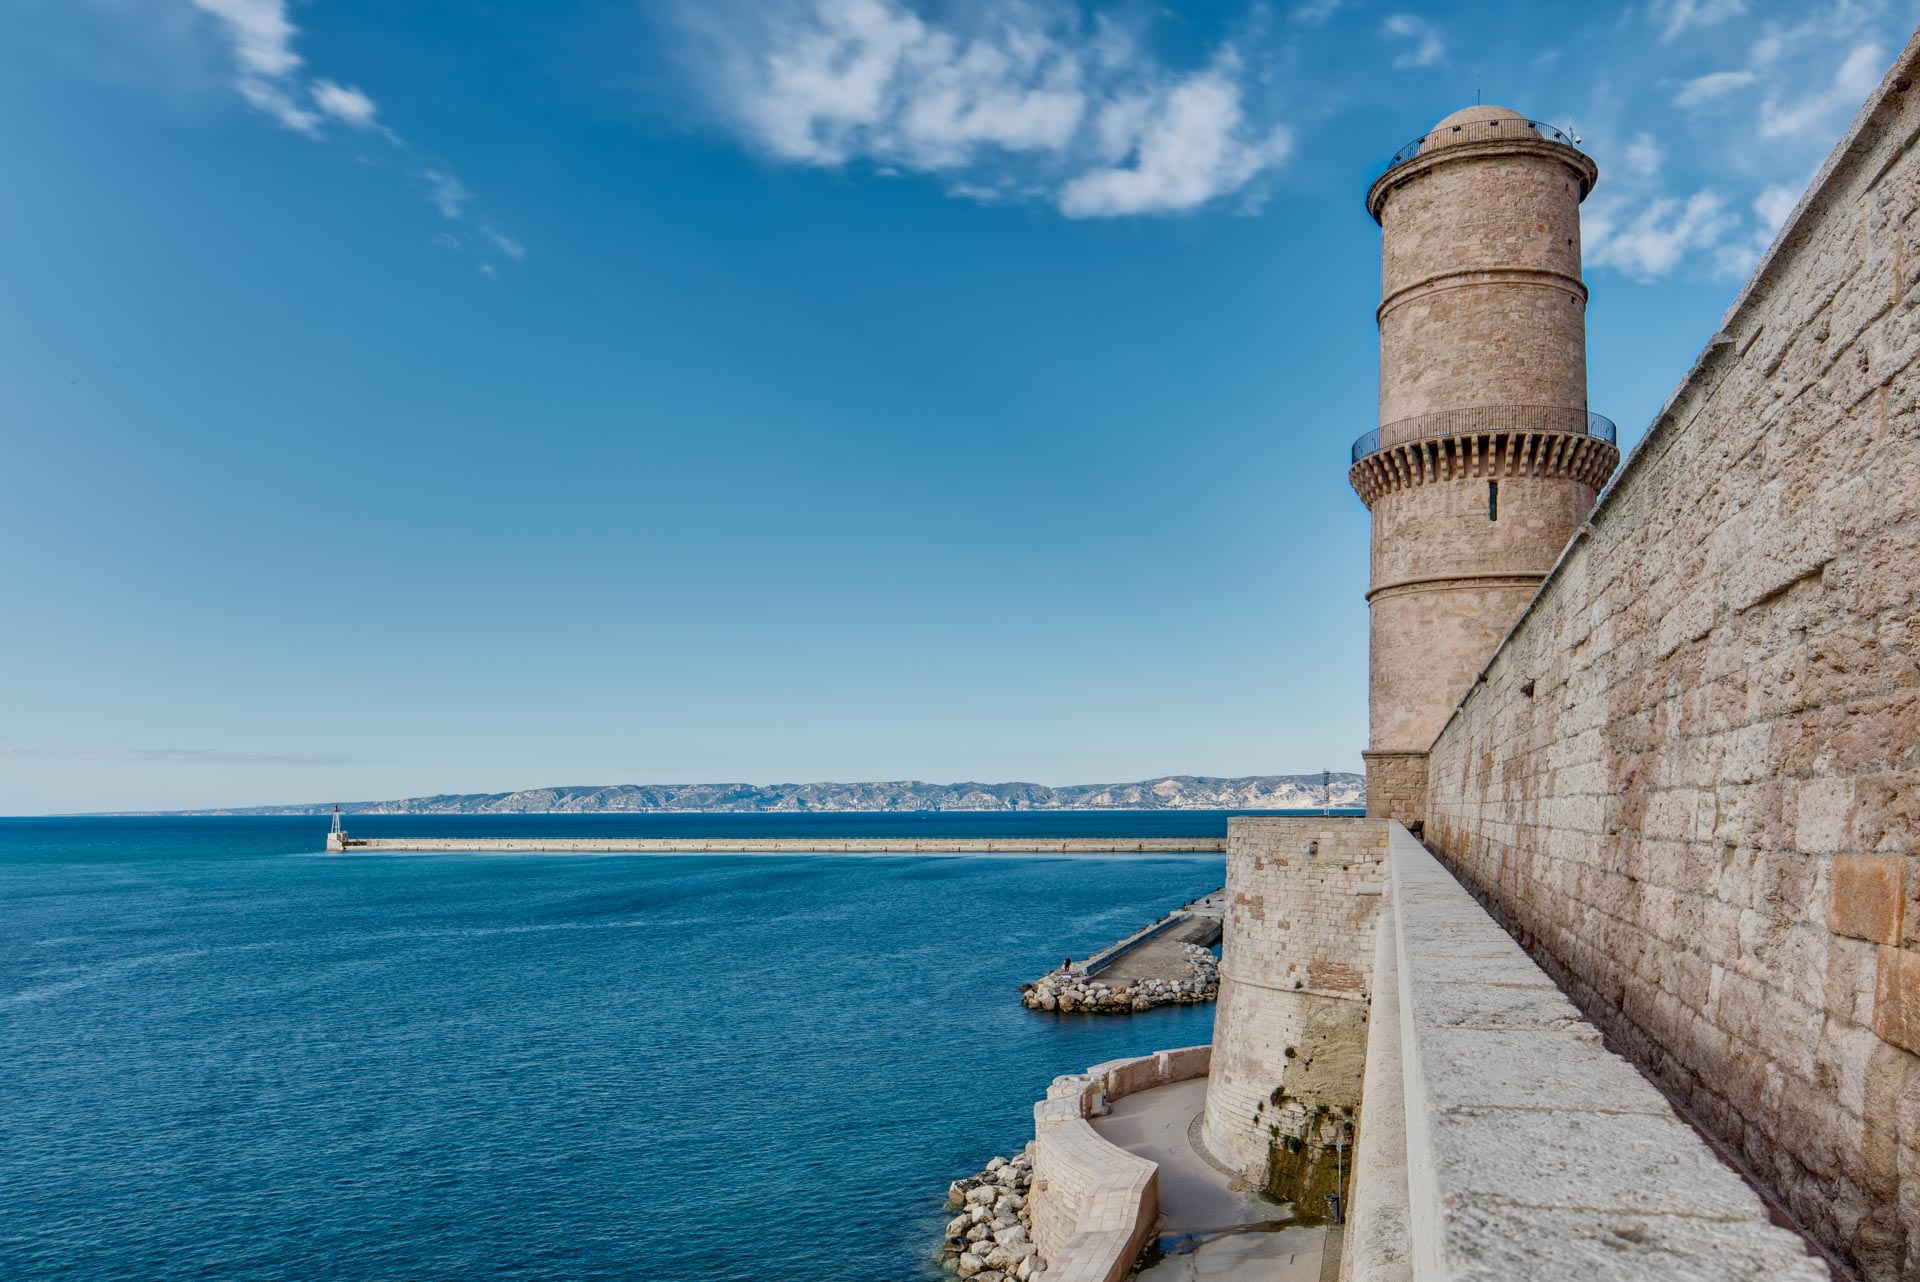 View on Light house and the sea at Marseille